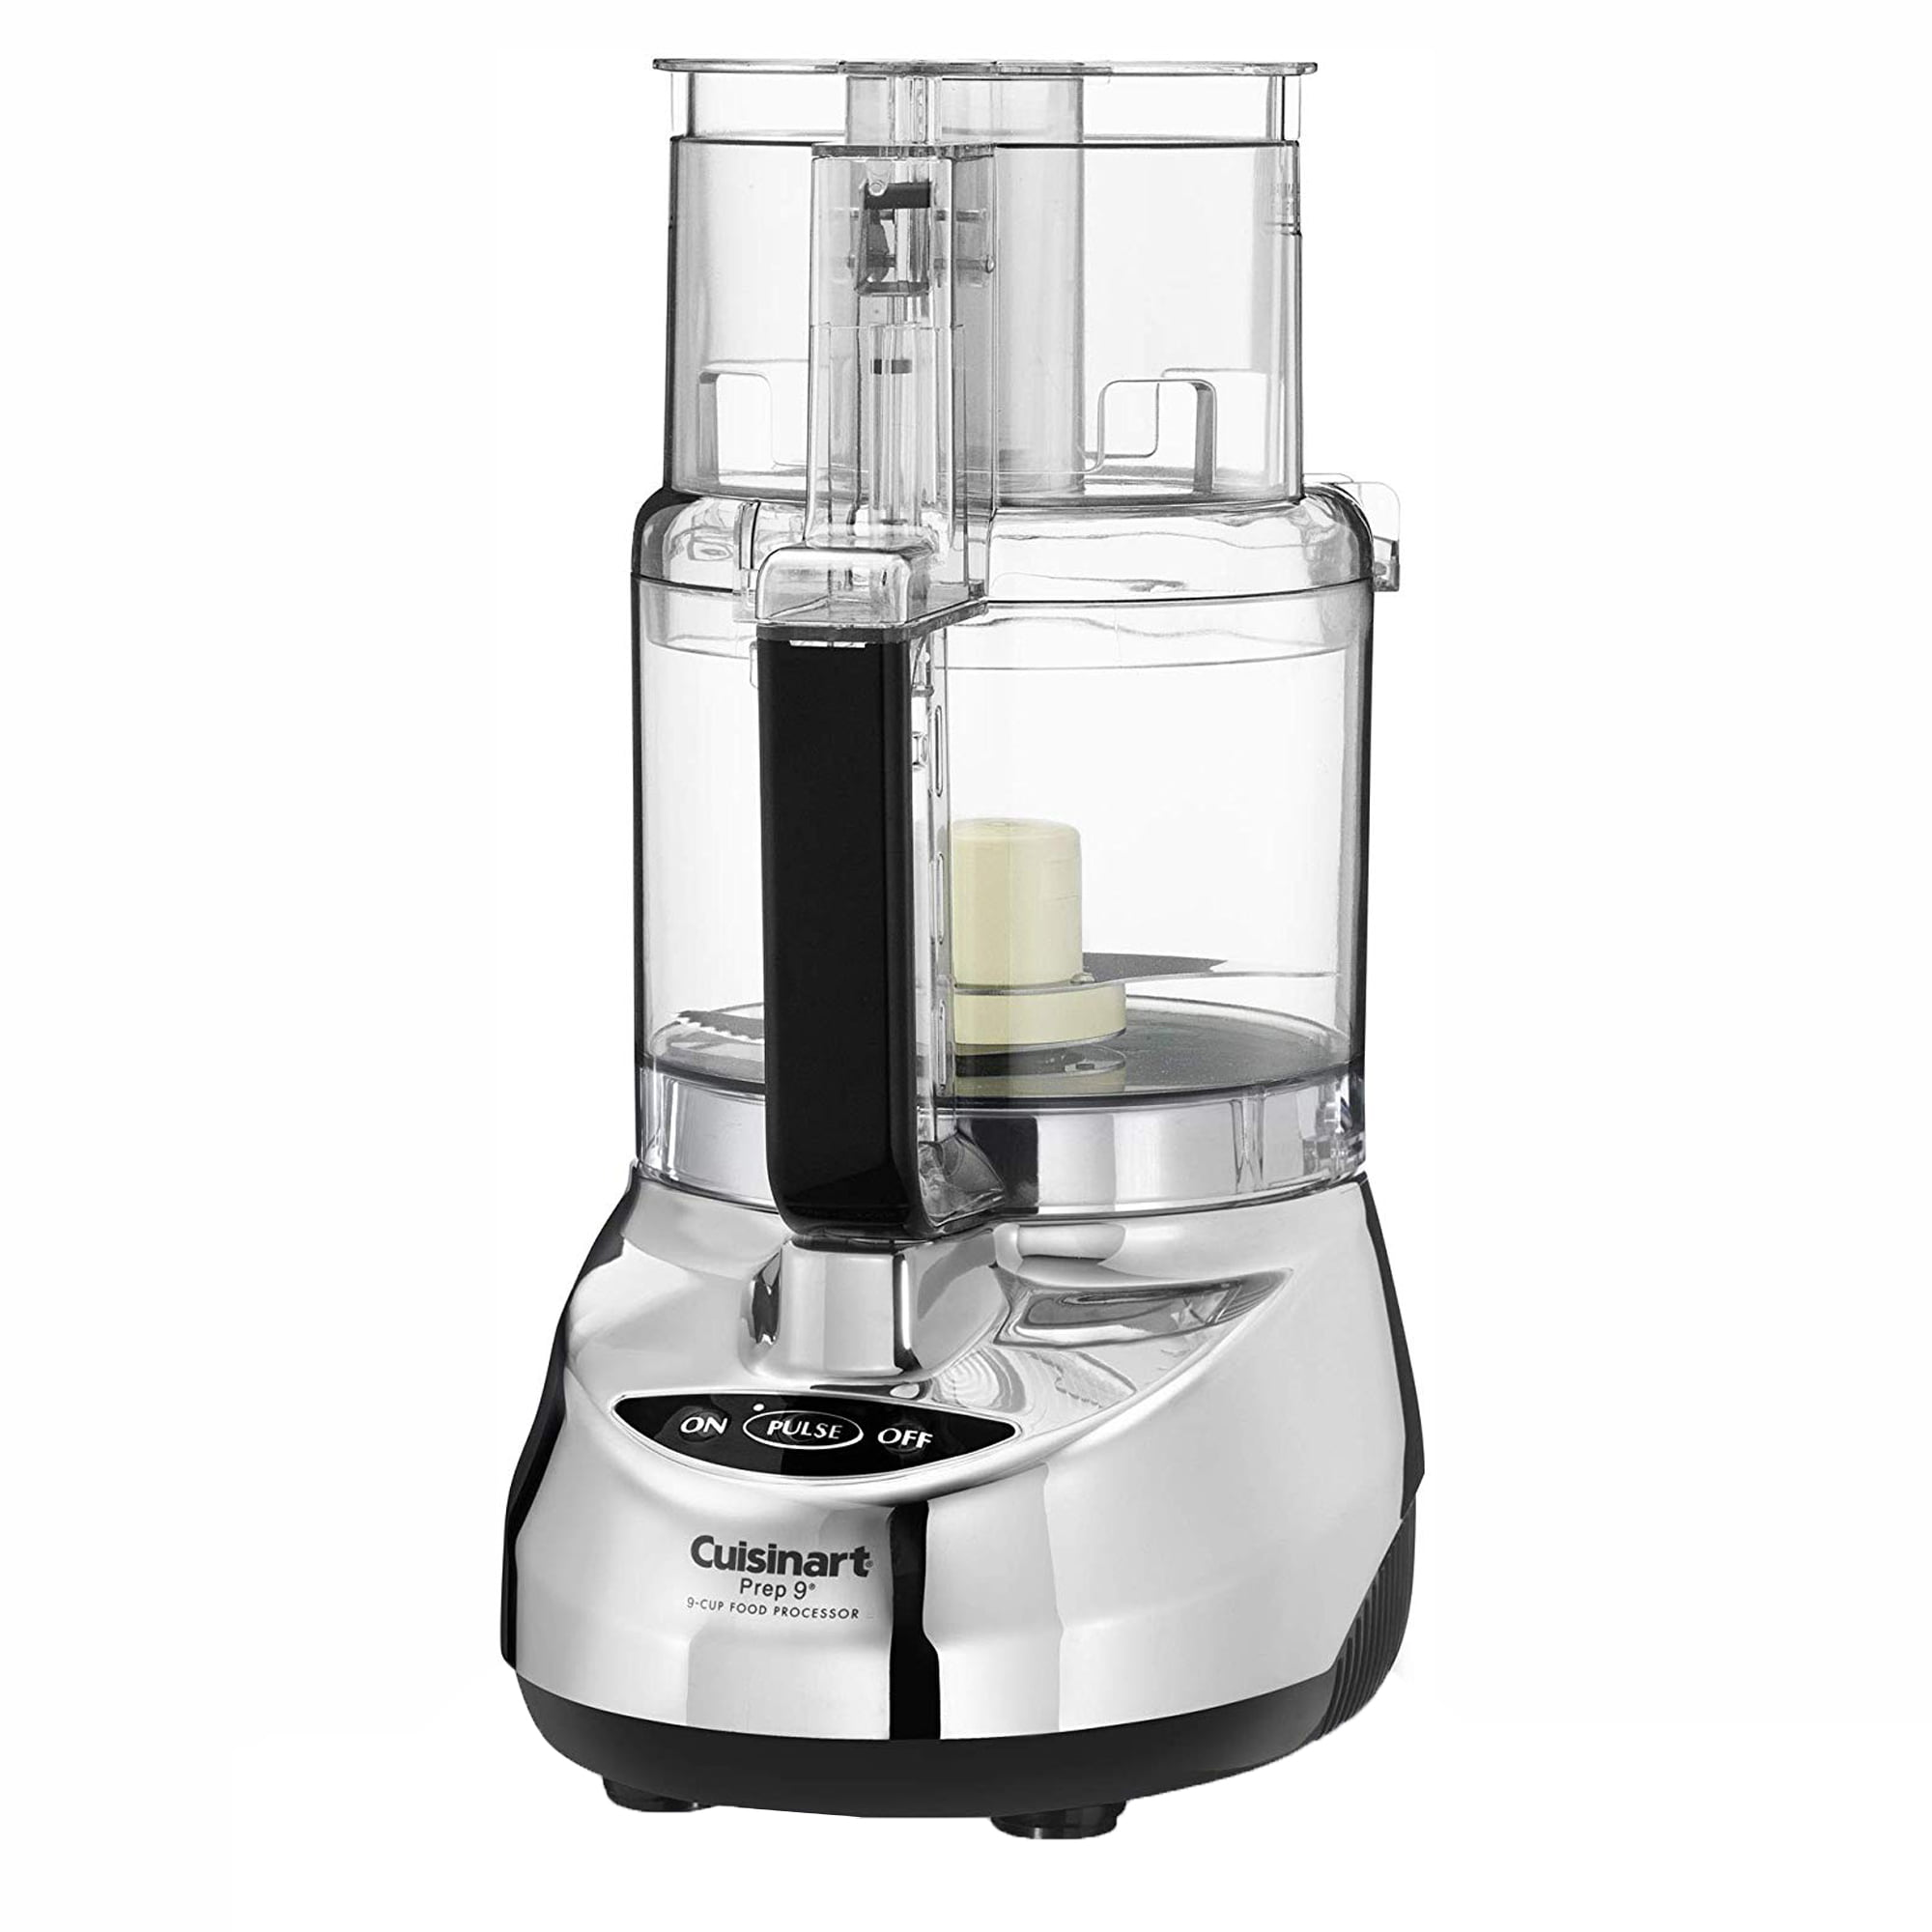 Cuisinart Prep 9 9-Cup Food Processor, Stainless Steel